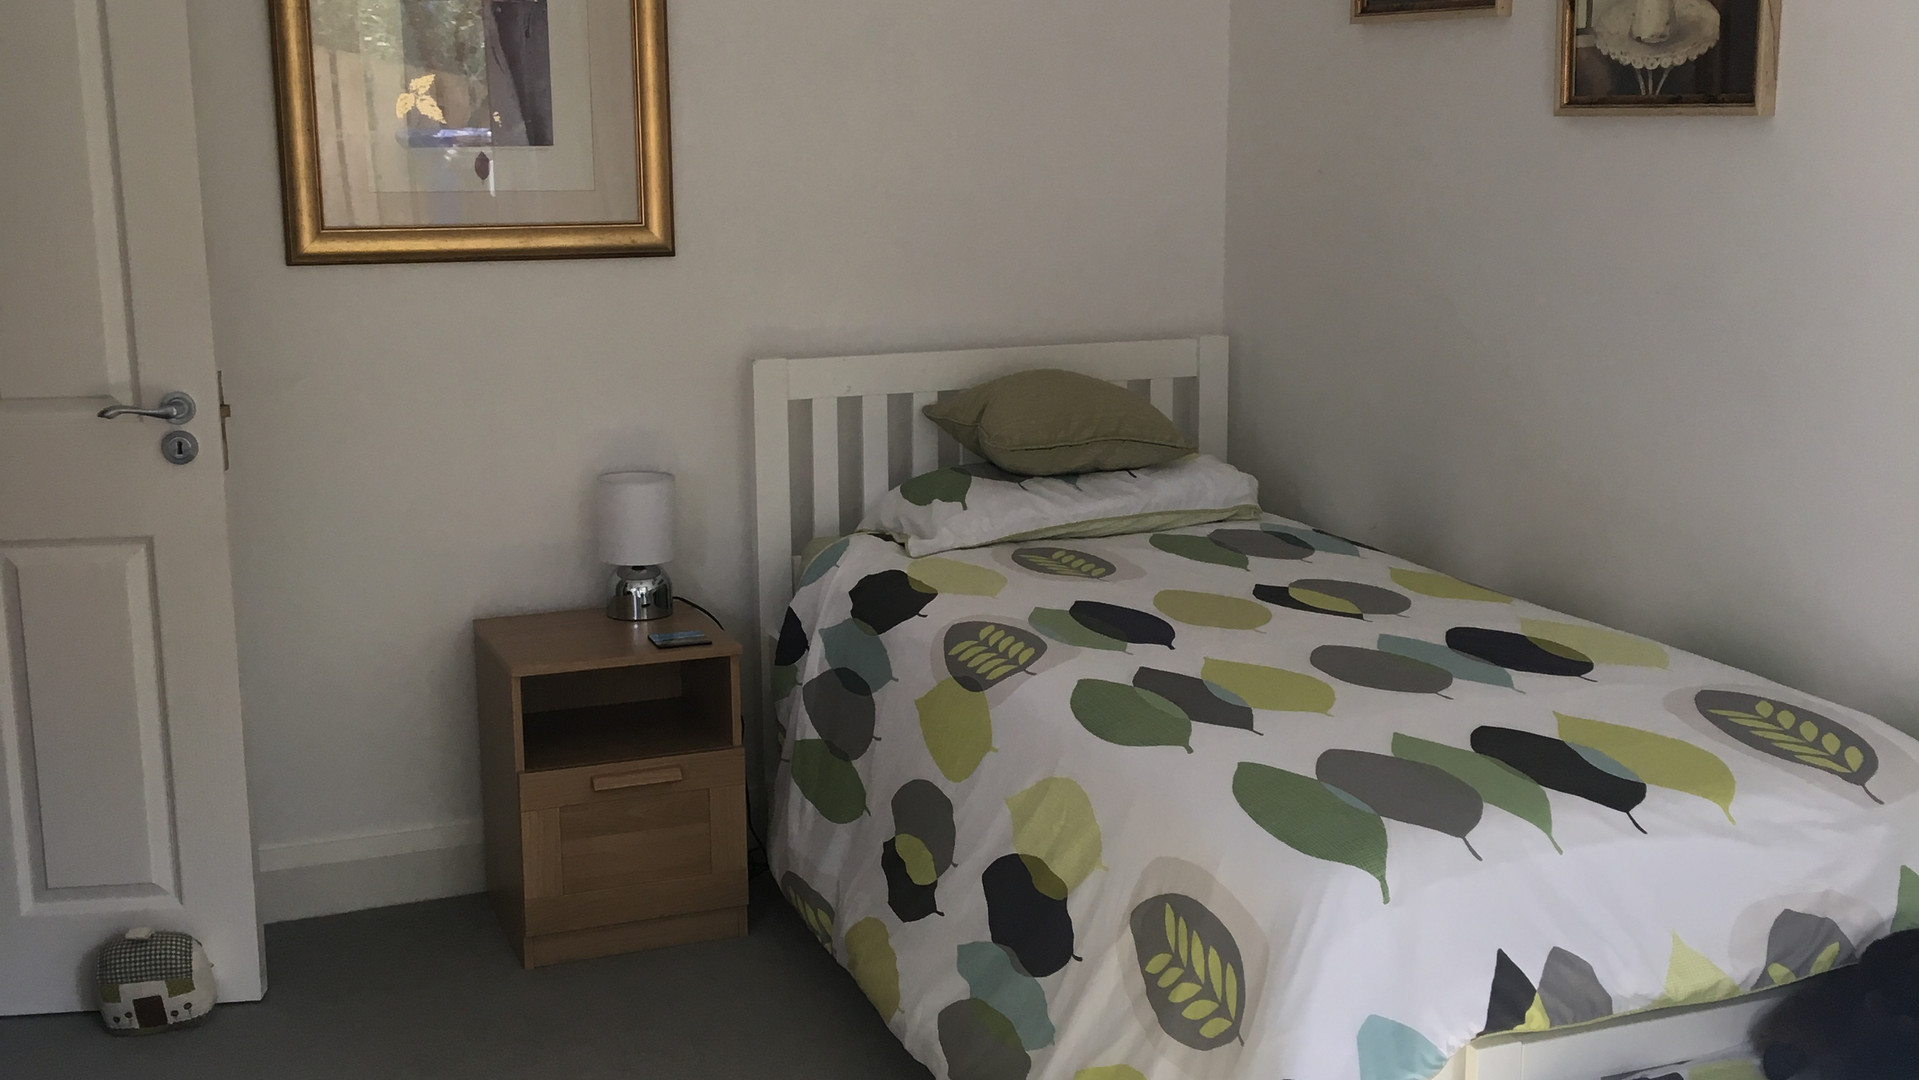 Room on ground floor with pull out single bed and toddler bed